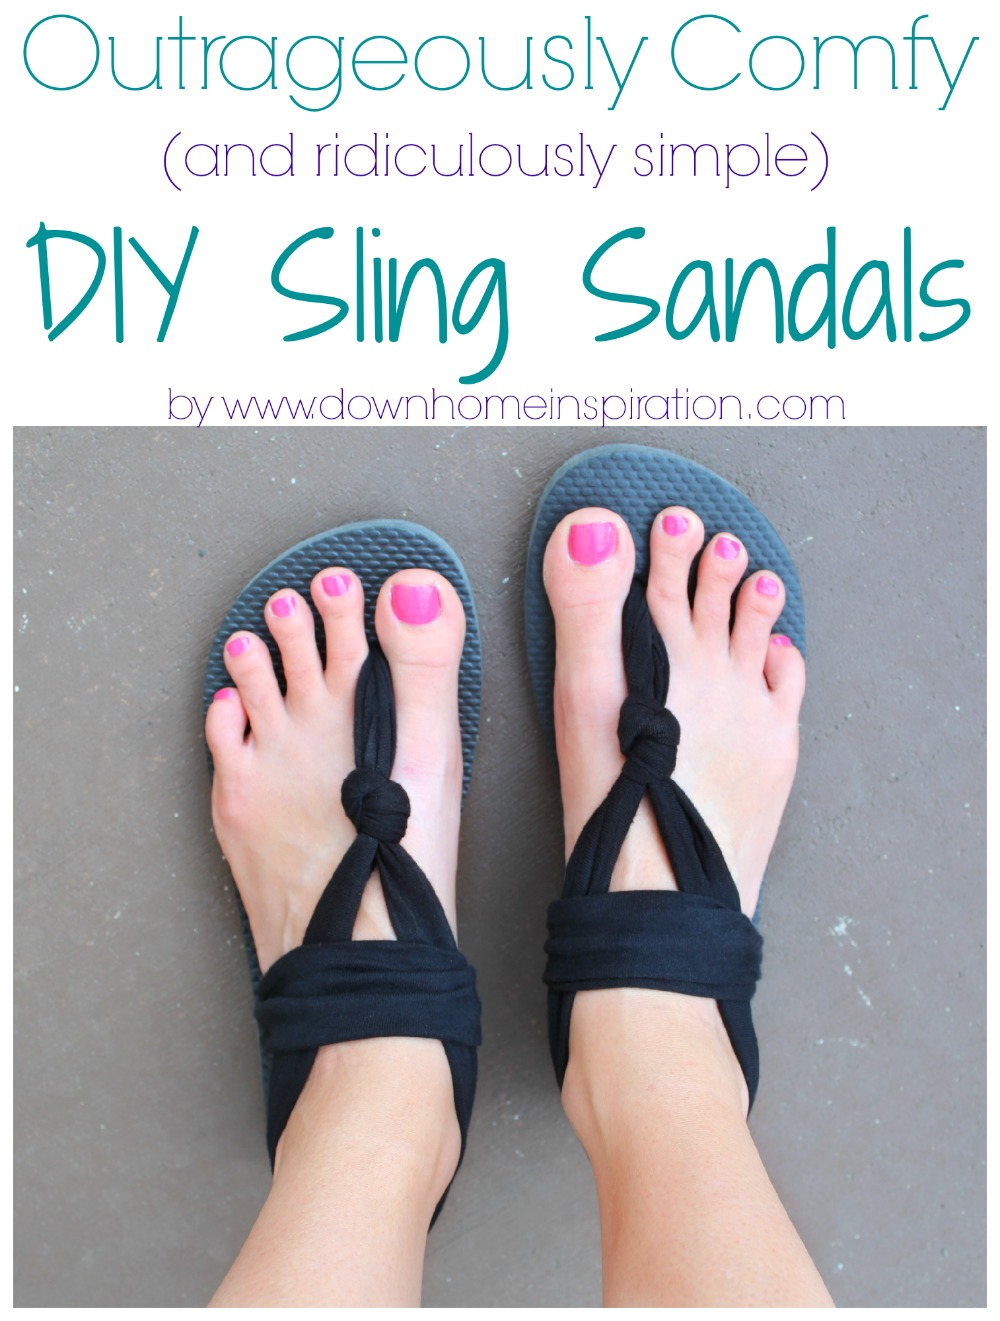 0b53cb0023699 Outrageously Comfy (and ridiculously simple) DIY Sling Sandals ...